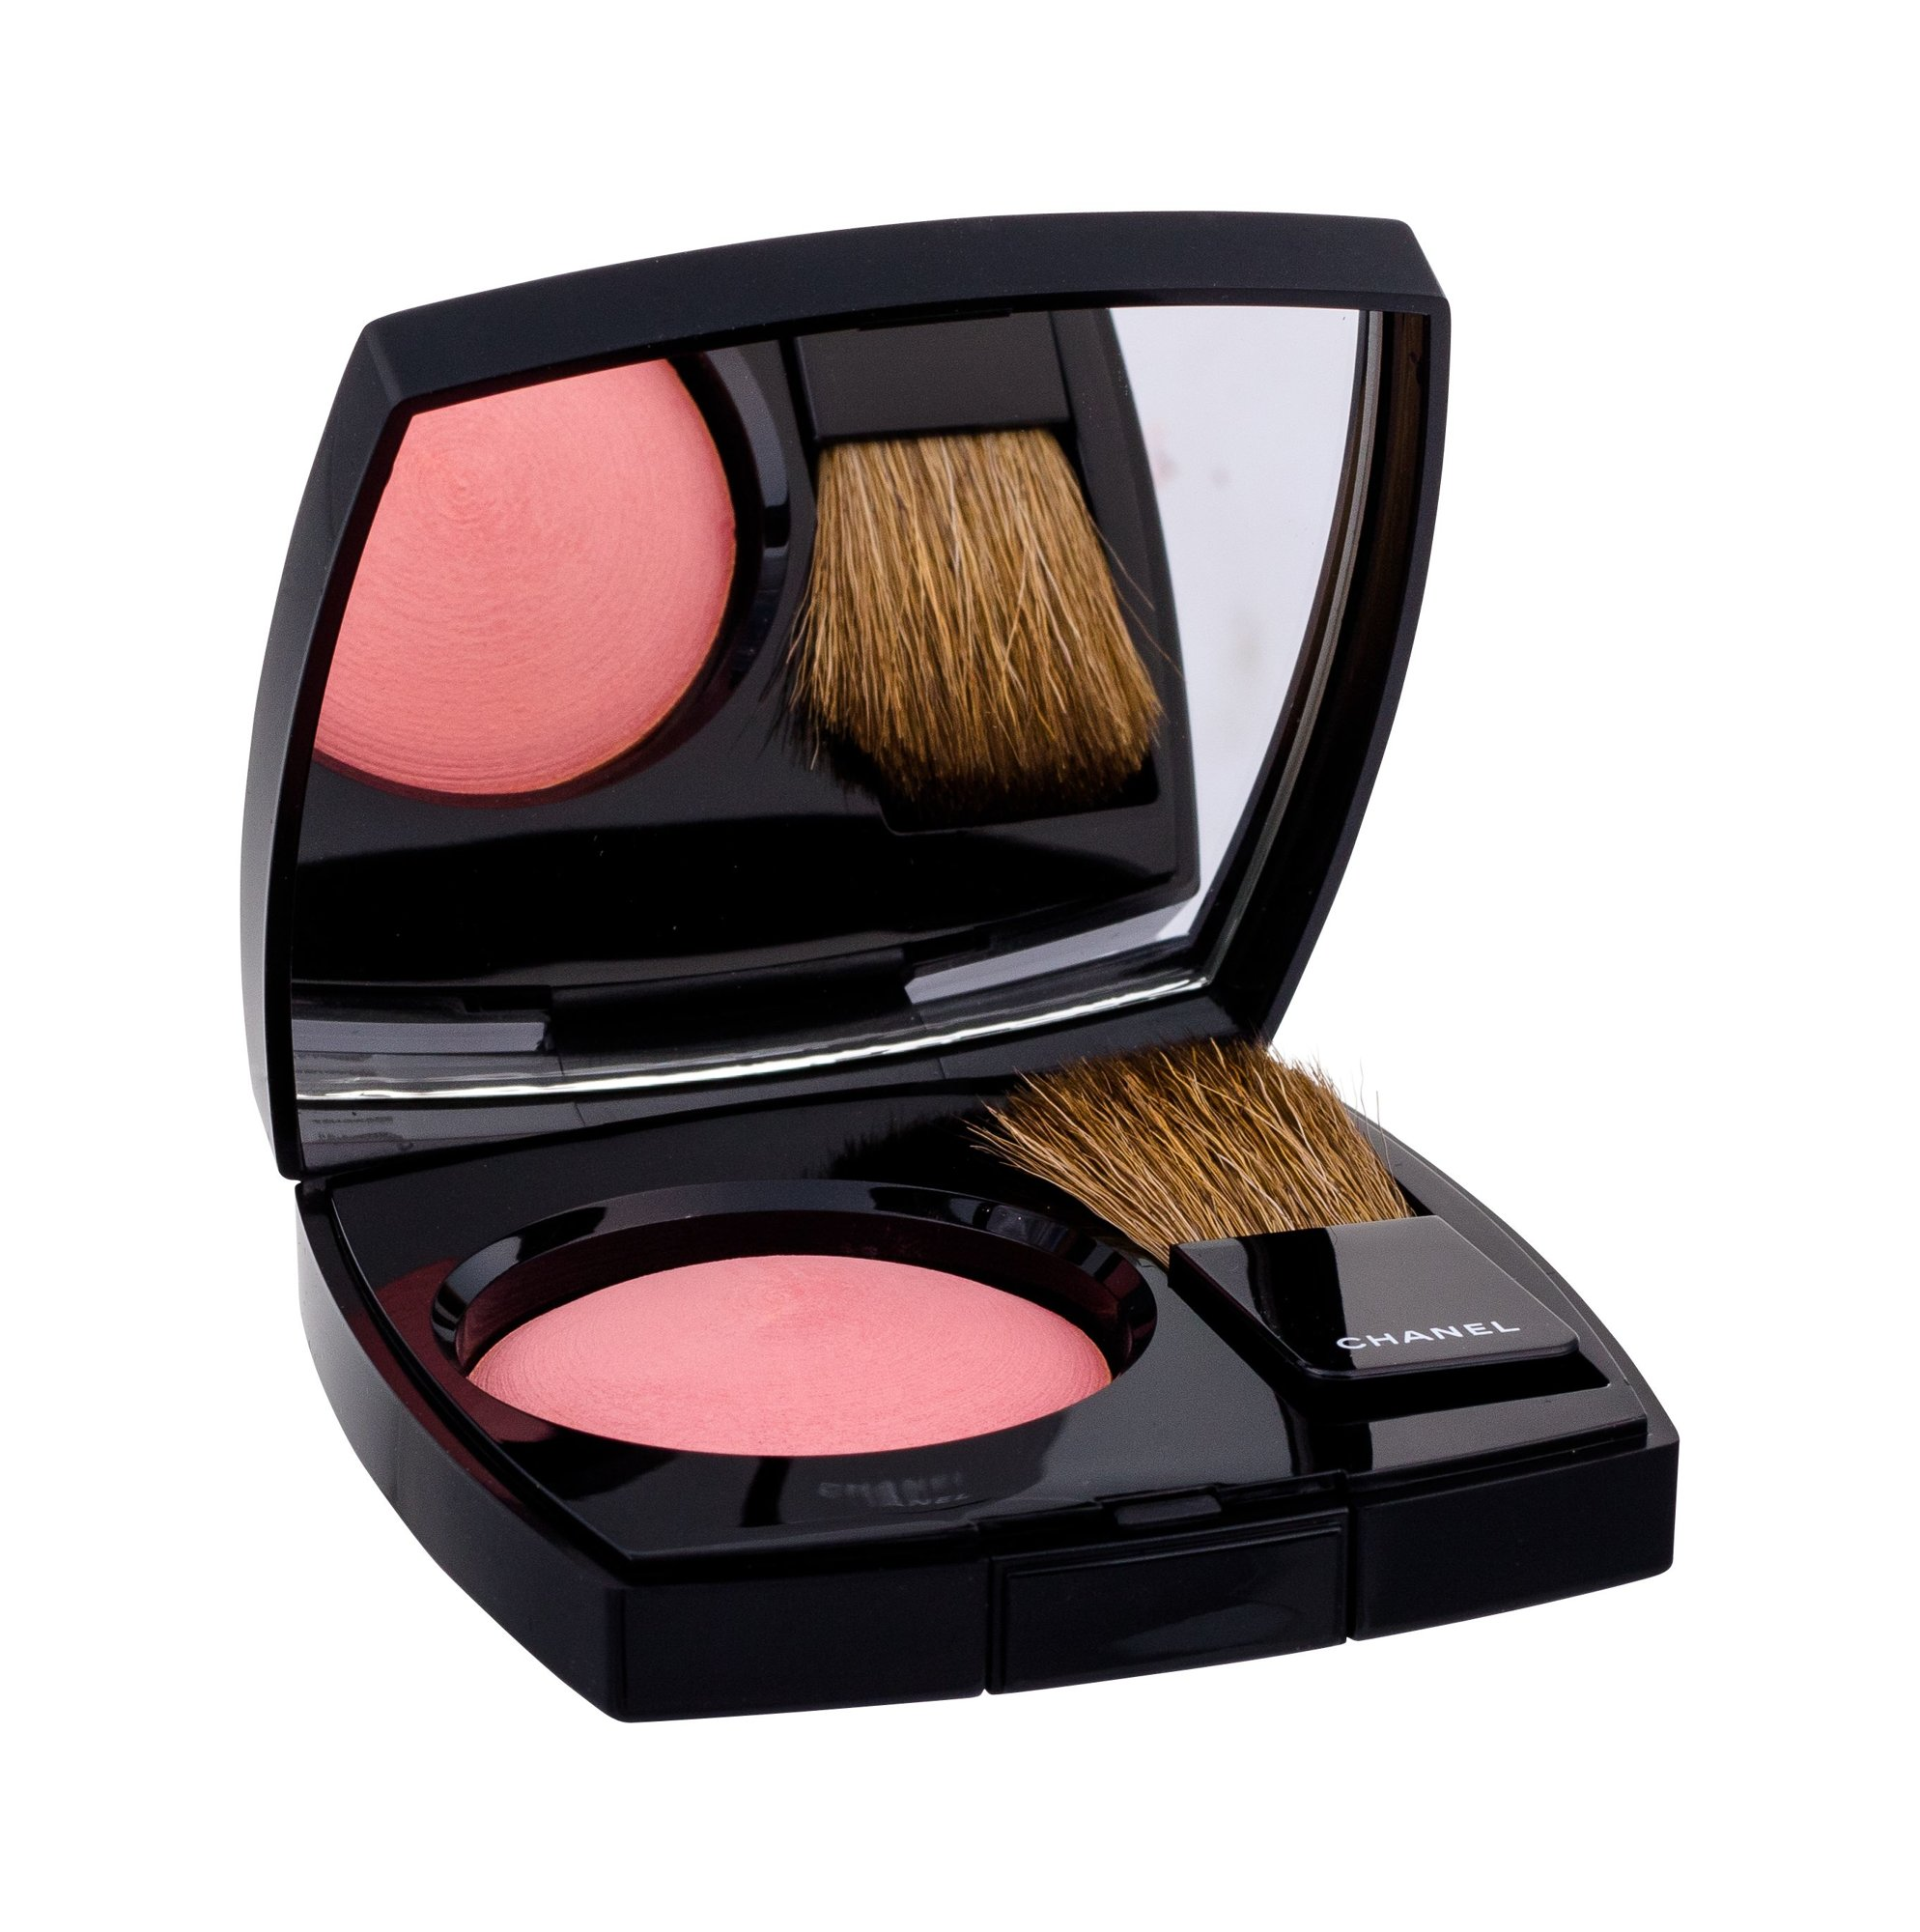 Chanel Joues Contraste Blush 4ml 72 Rose Initial